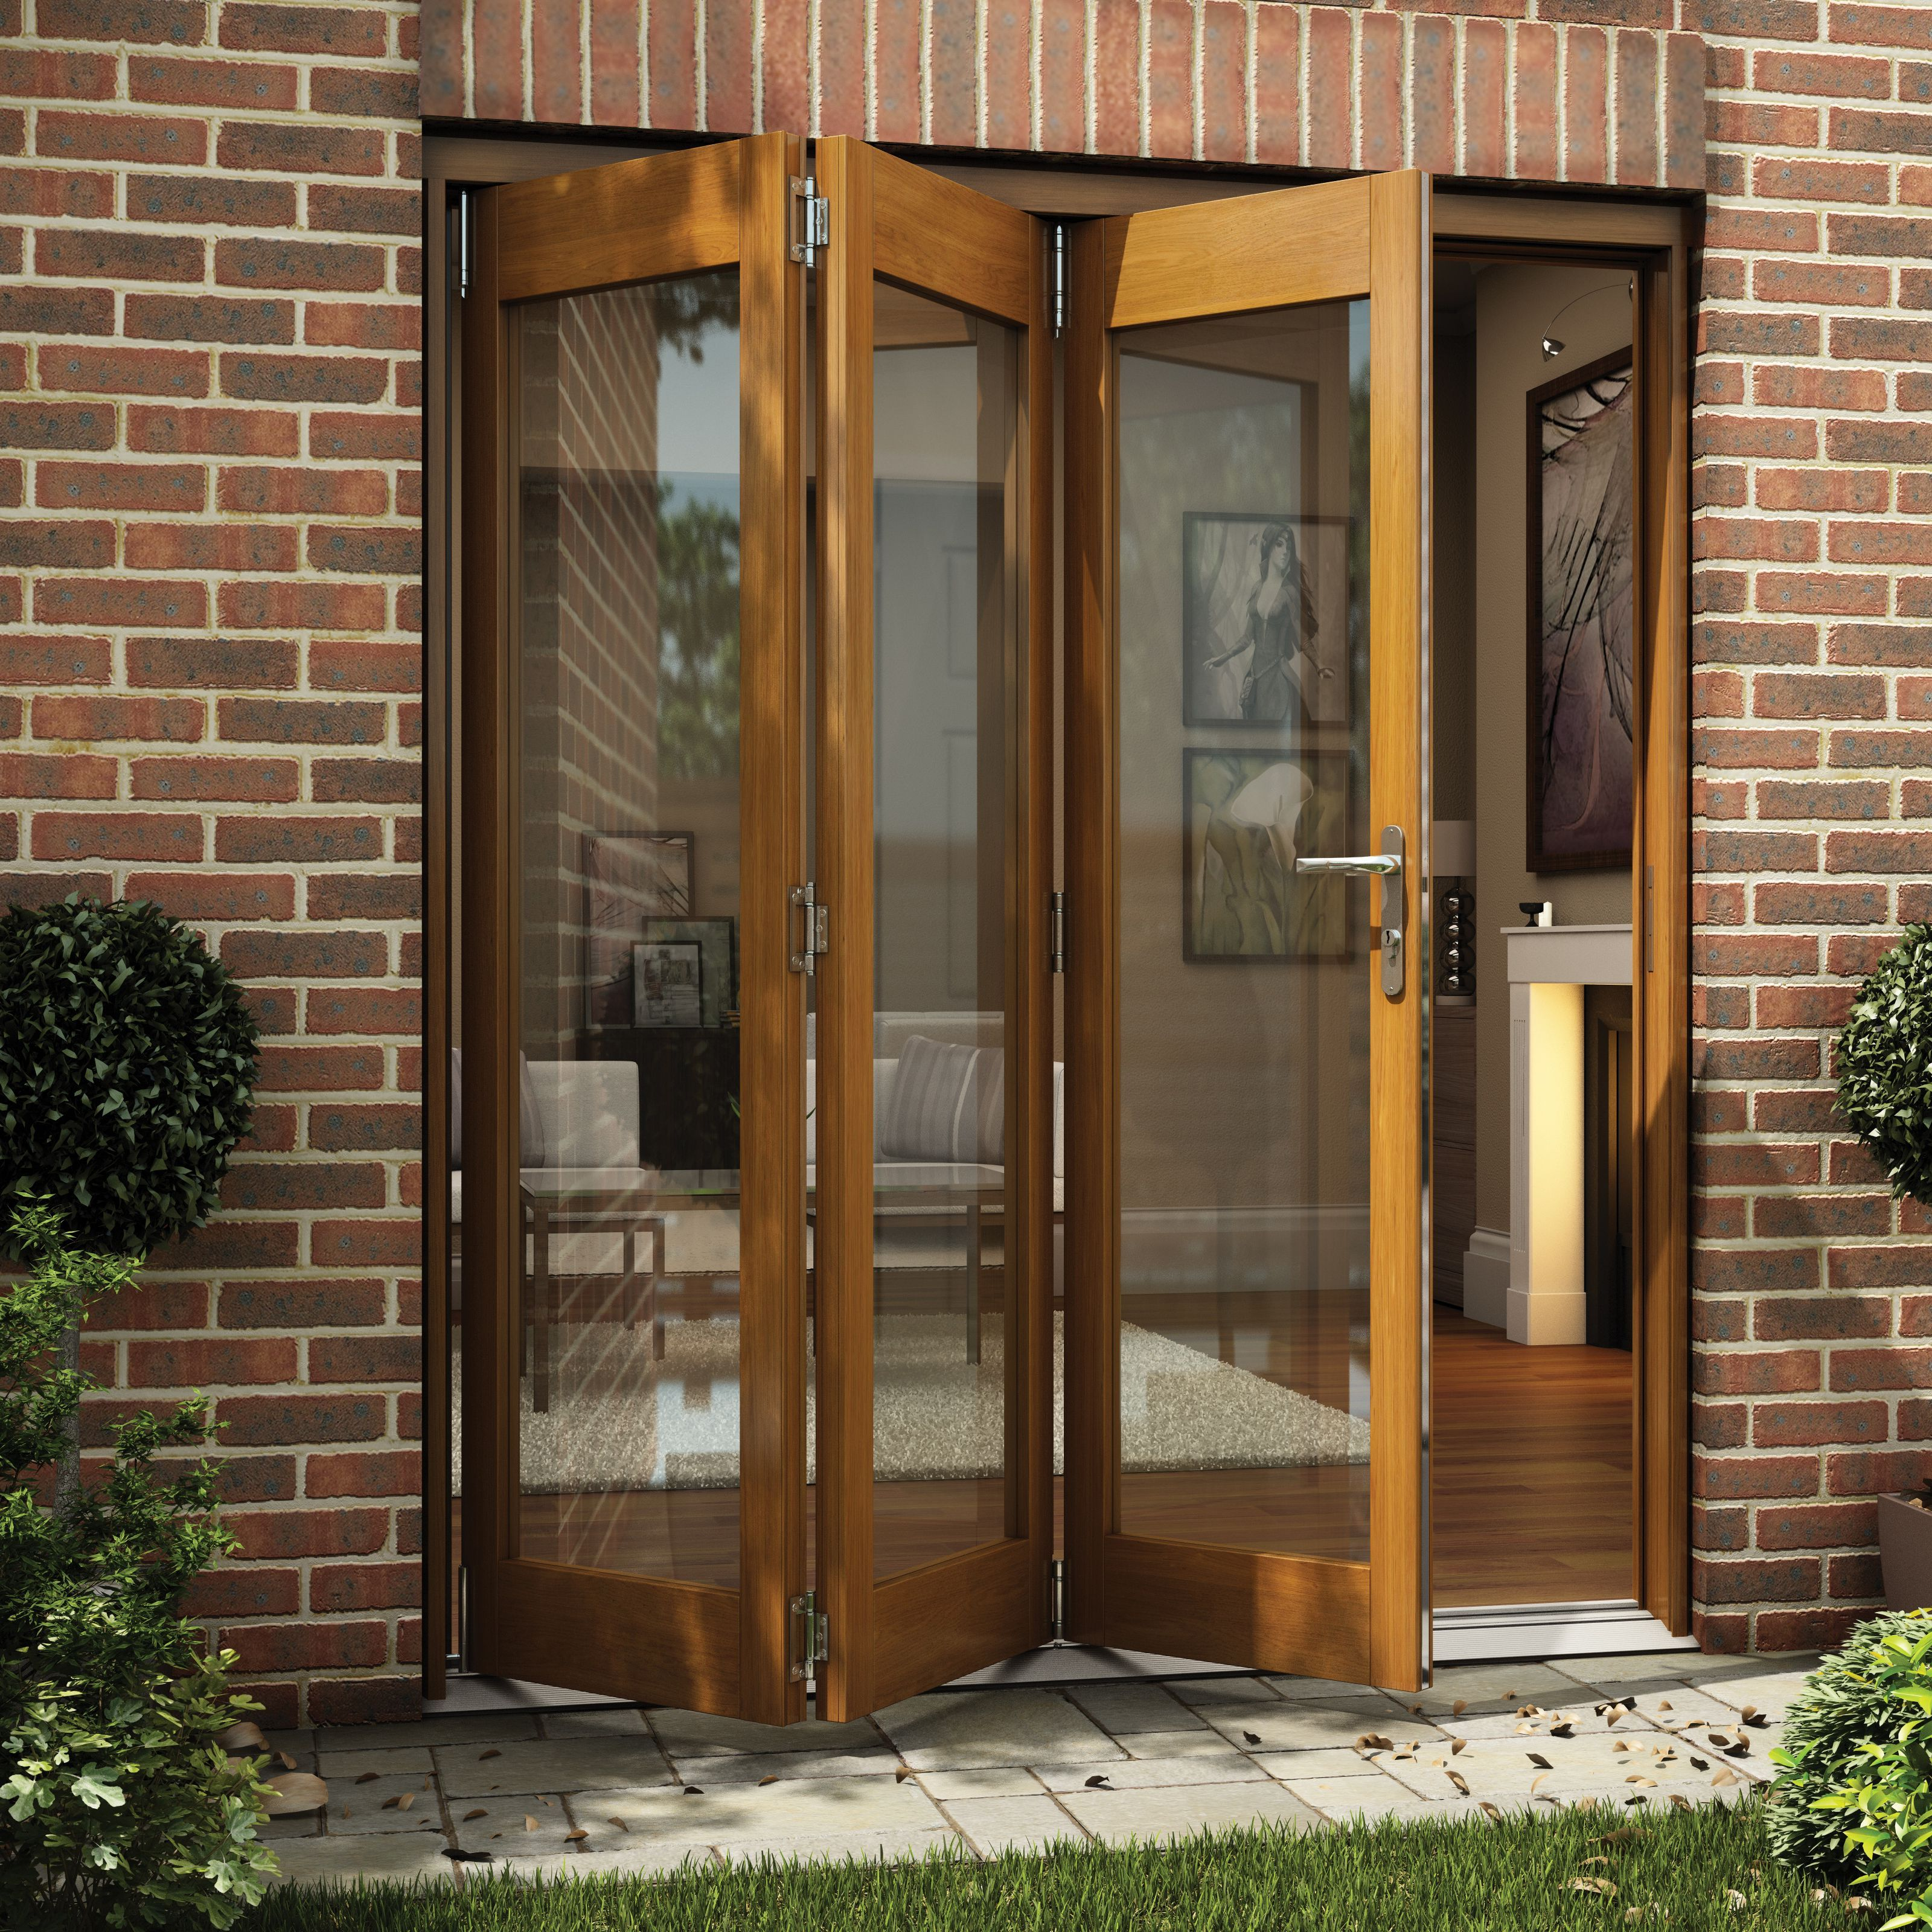 Oak Veneer Glazed Folding Sliding Patio Doors - Bu0026Q for all your home and garden supplies and advice on all the latest DIY trends & Oak Veneer Glazed Folding Sliding Patio Doors (H)2105mm (W)1805mm ...